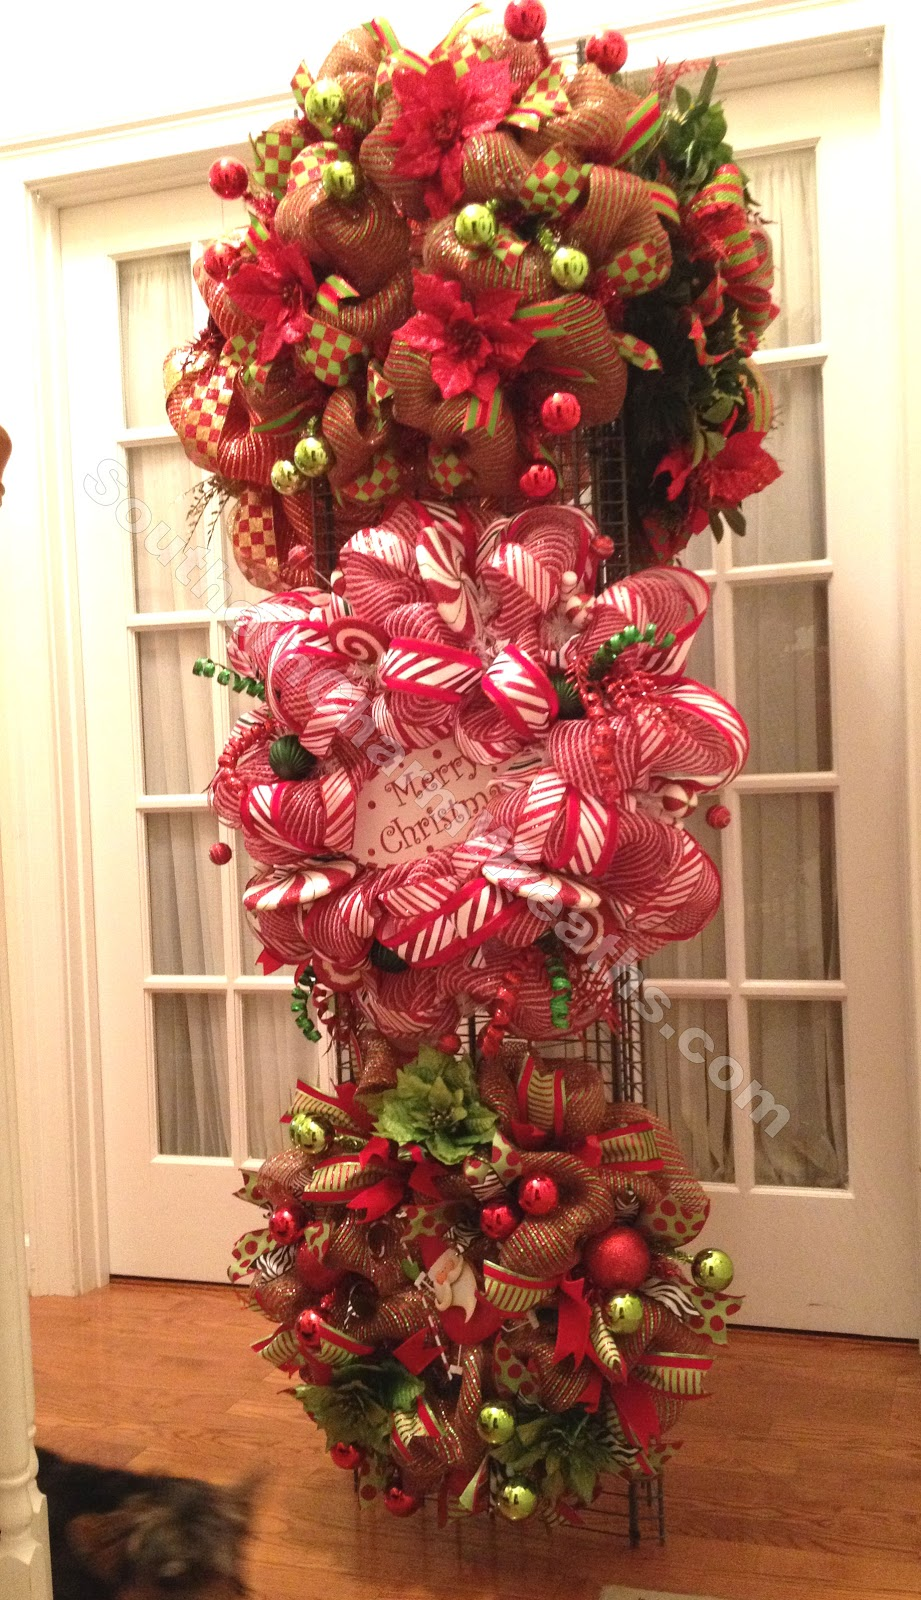 How to make a wreath craft show display or storage Christmas wreath making